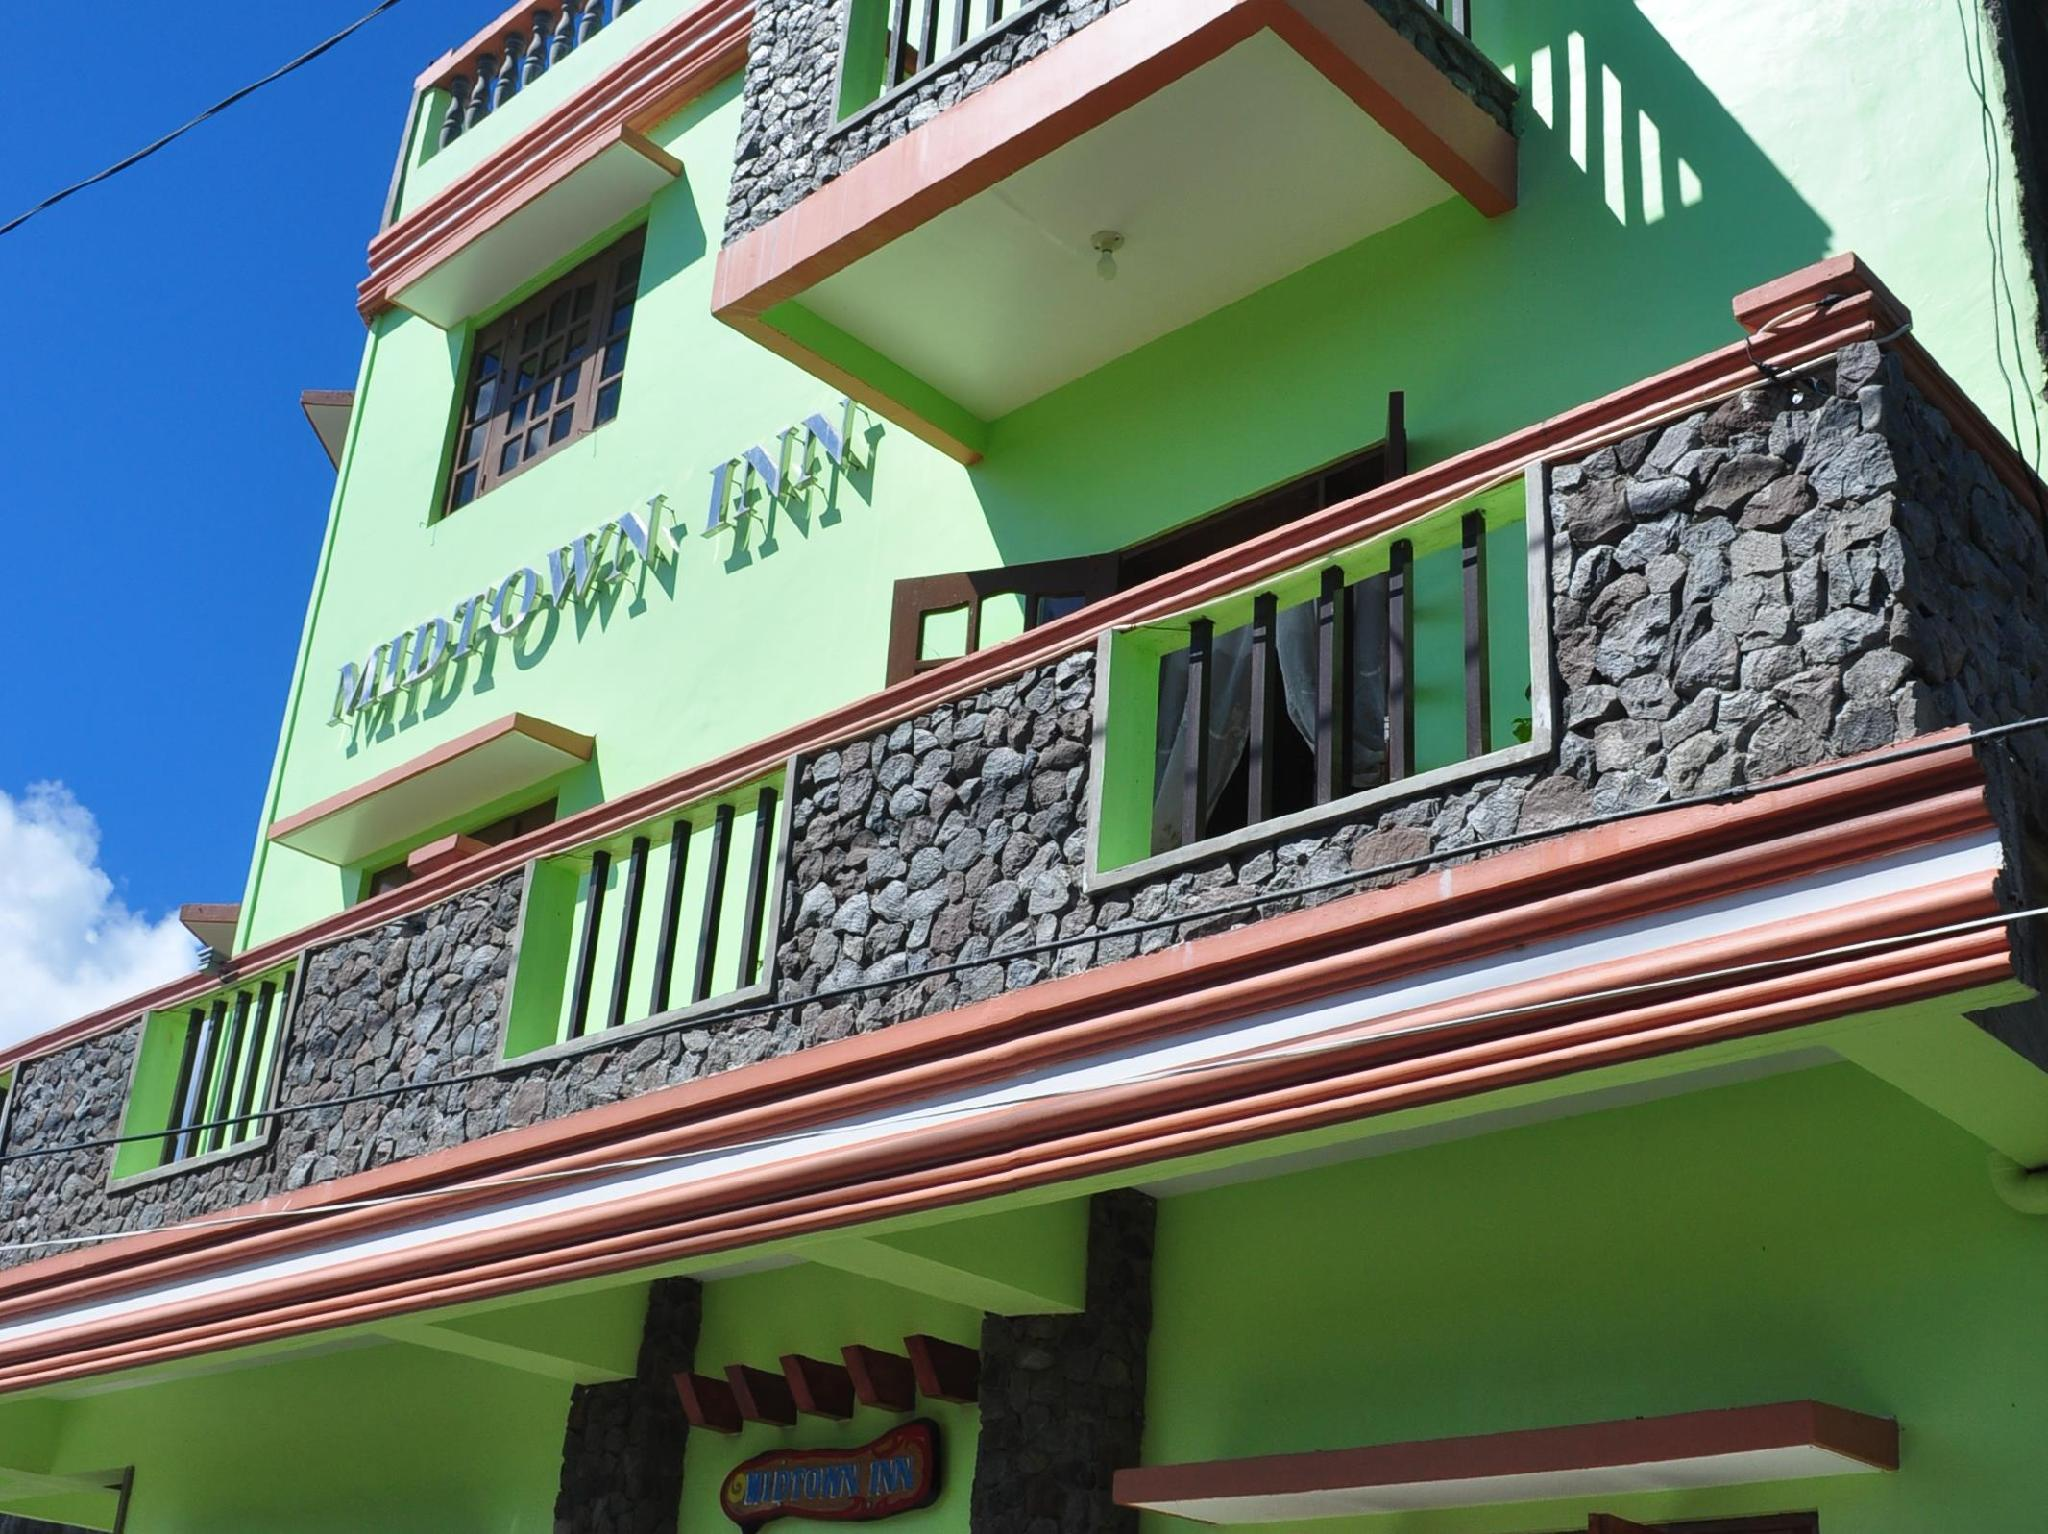 Midtown Inn Batanes, Basco